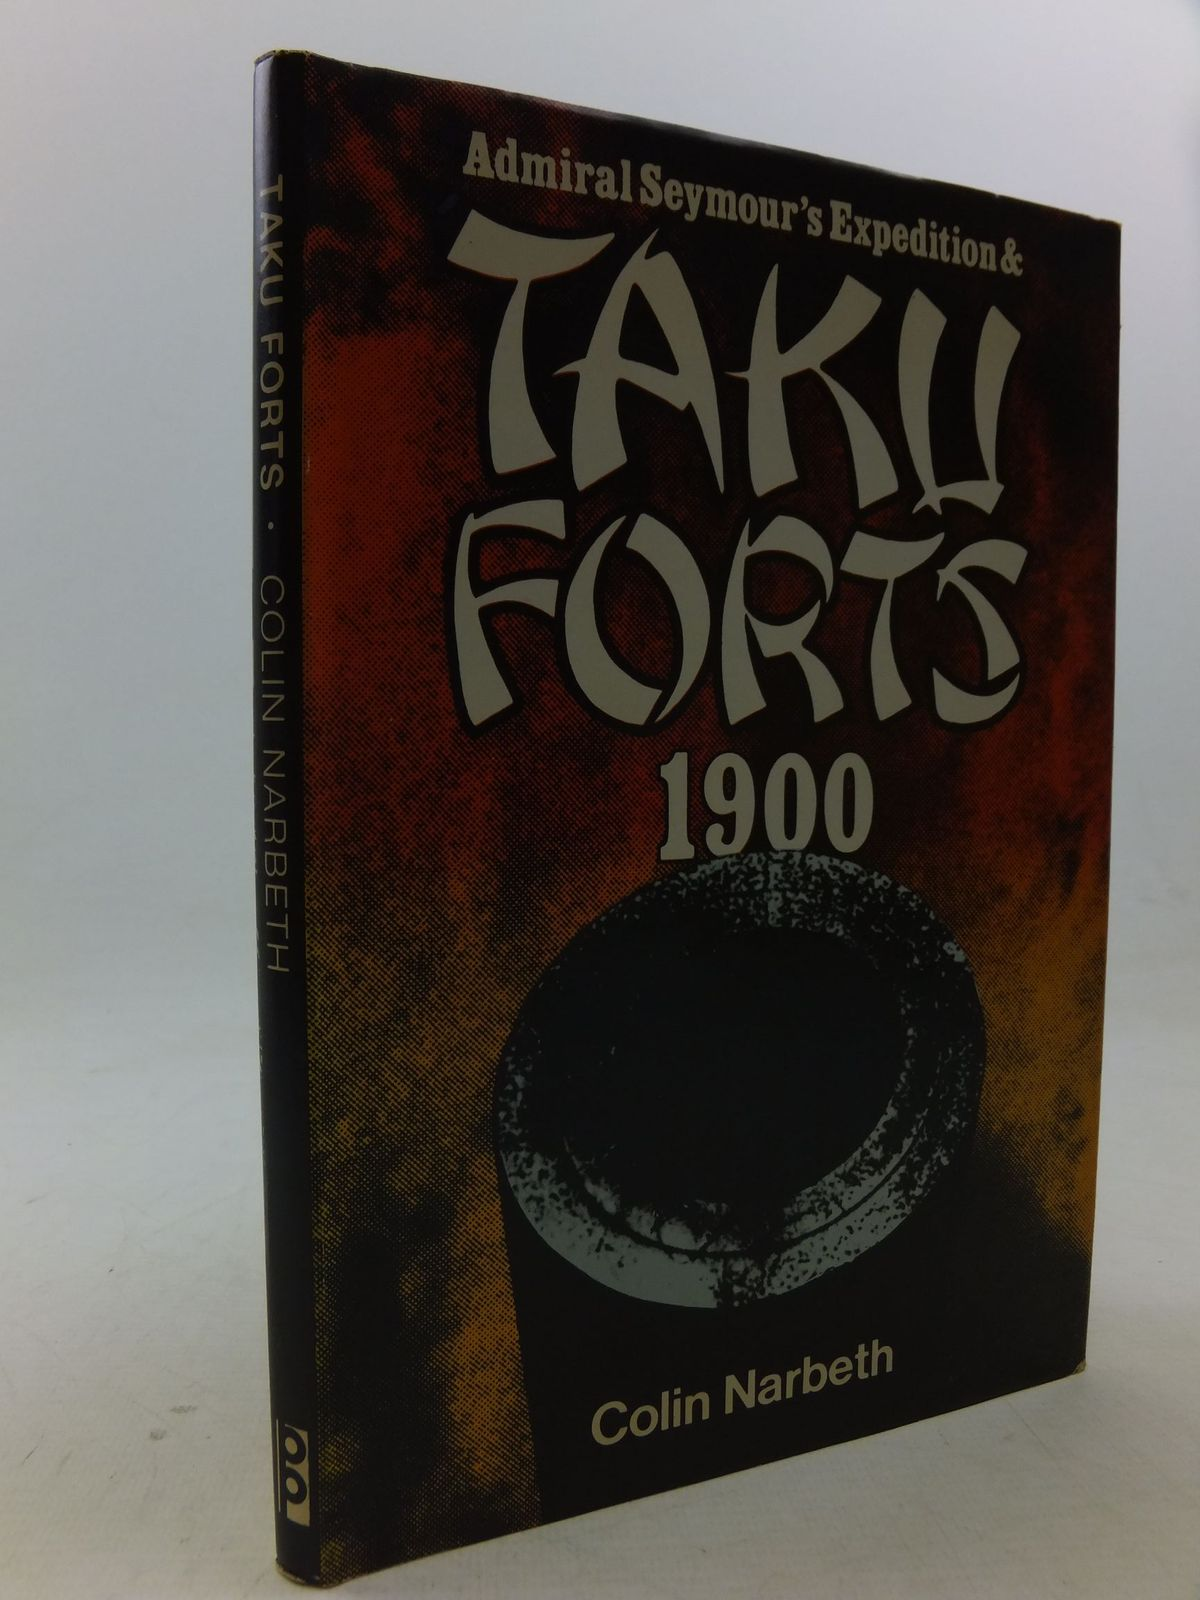 Photo of ADMIRAL SEYMOUR'S EXPEDITION & TAKU FORTS 1900 written by Narbeth, Colin published by Picton Publishing (STOCK CODE: 2113774)  for sale by Stella & Rose's Books